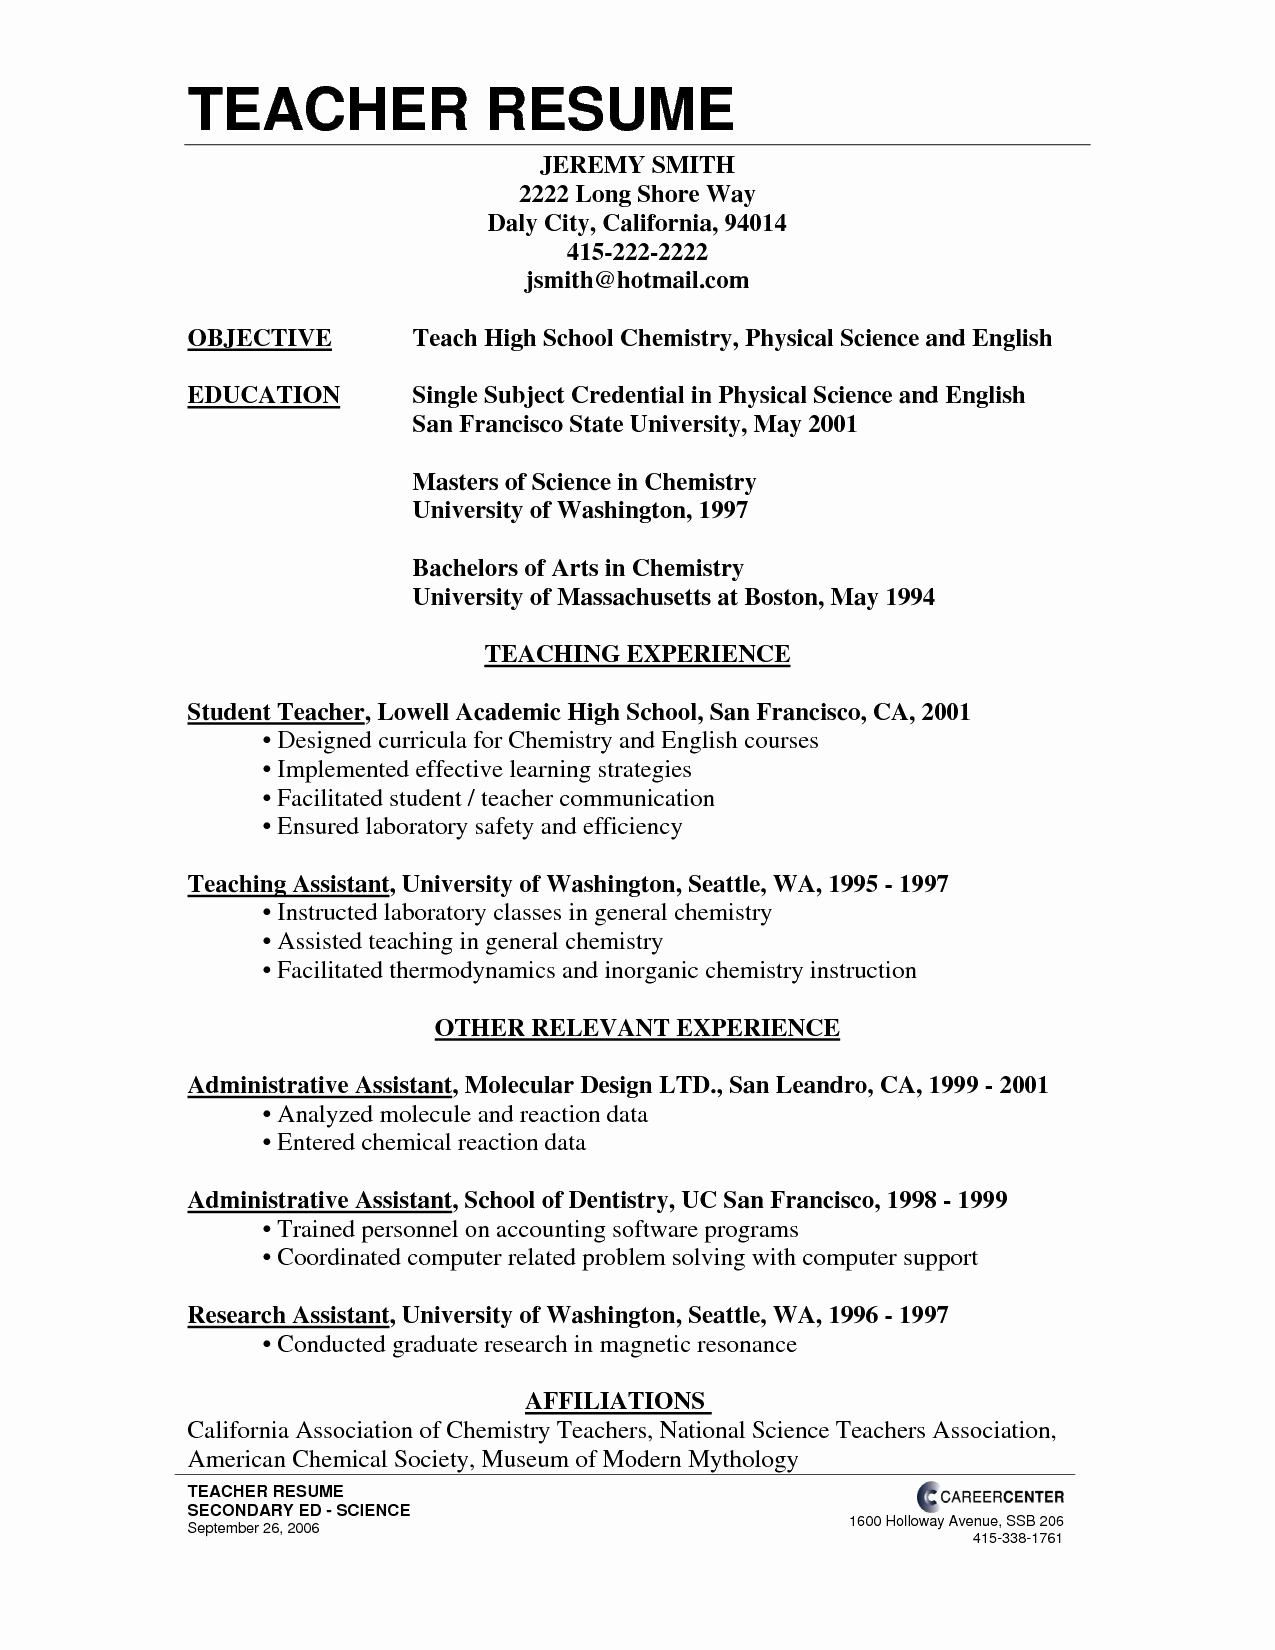 Best Free Cover Letter Template - Resume Cover Letter Example New Free Cover Letter Templates Examples